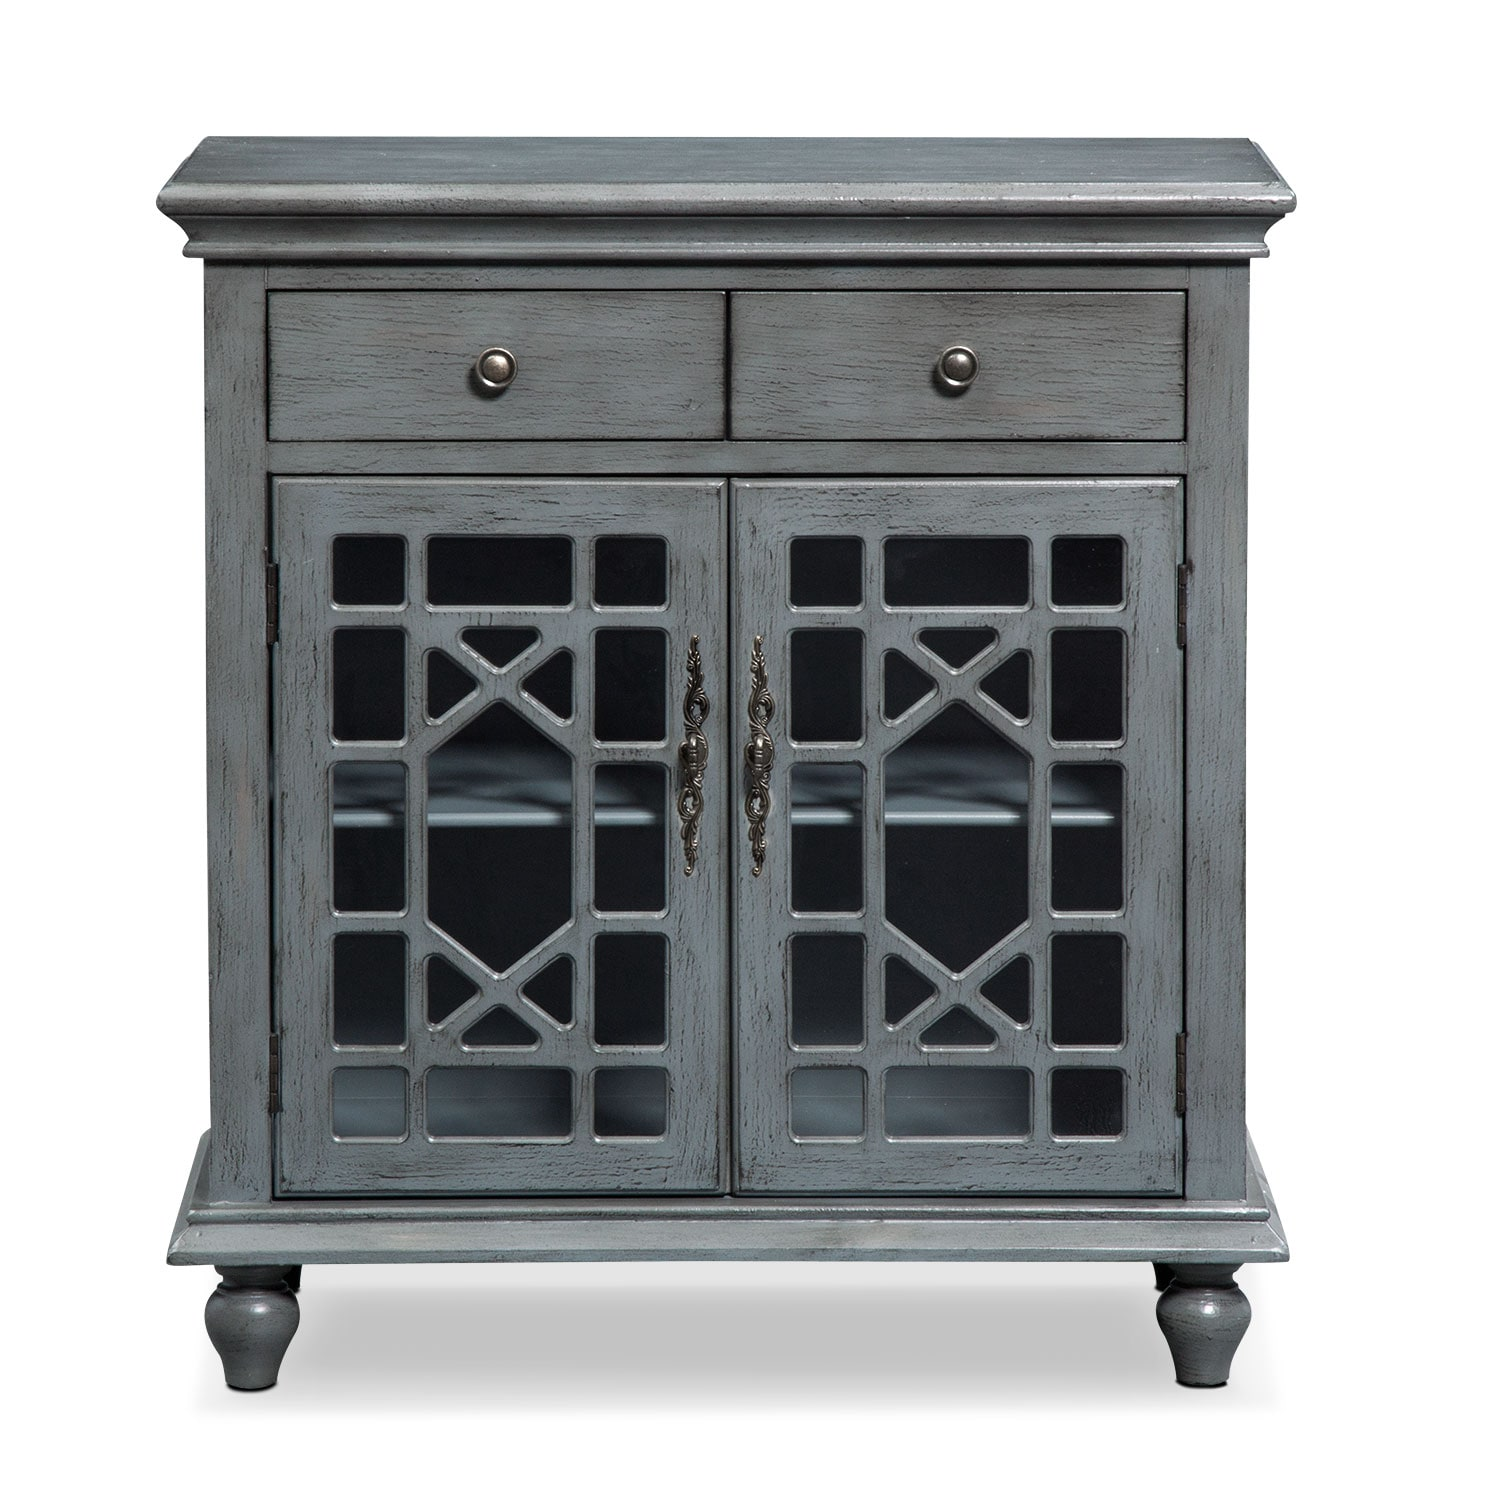 American Accents Furniture Nc: Grenoble Accent Cabinet - Gray